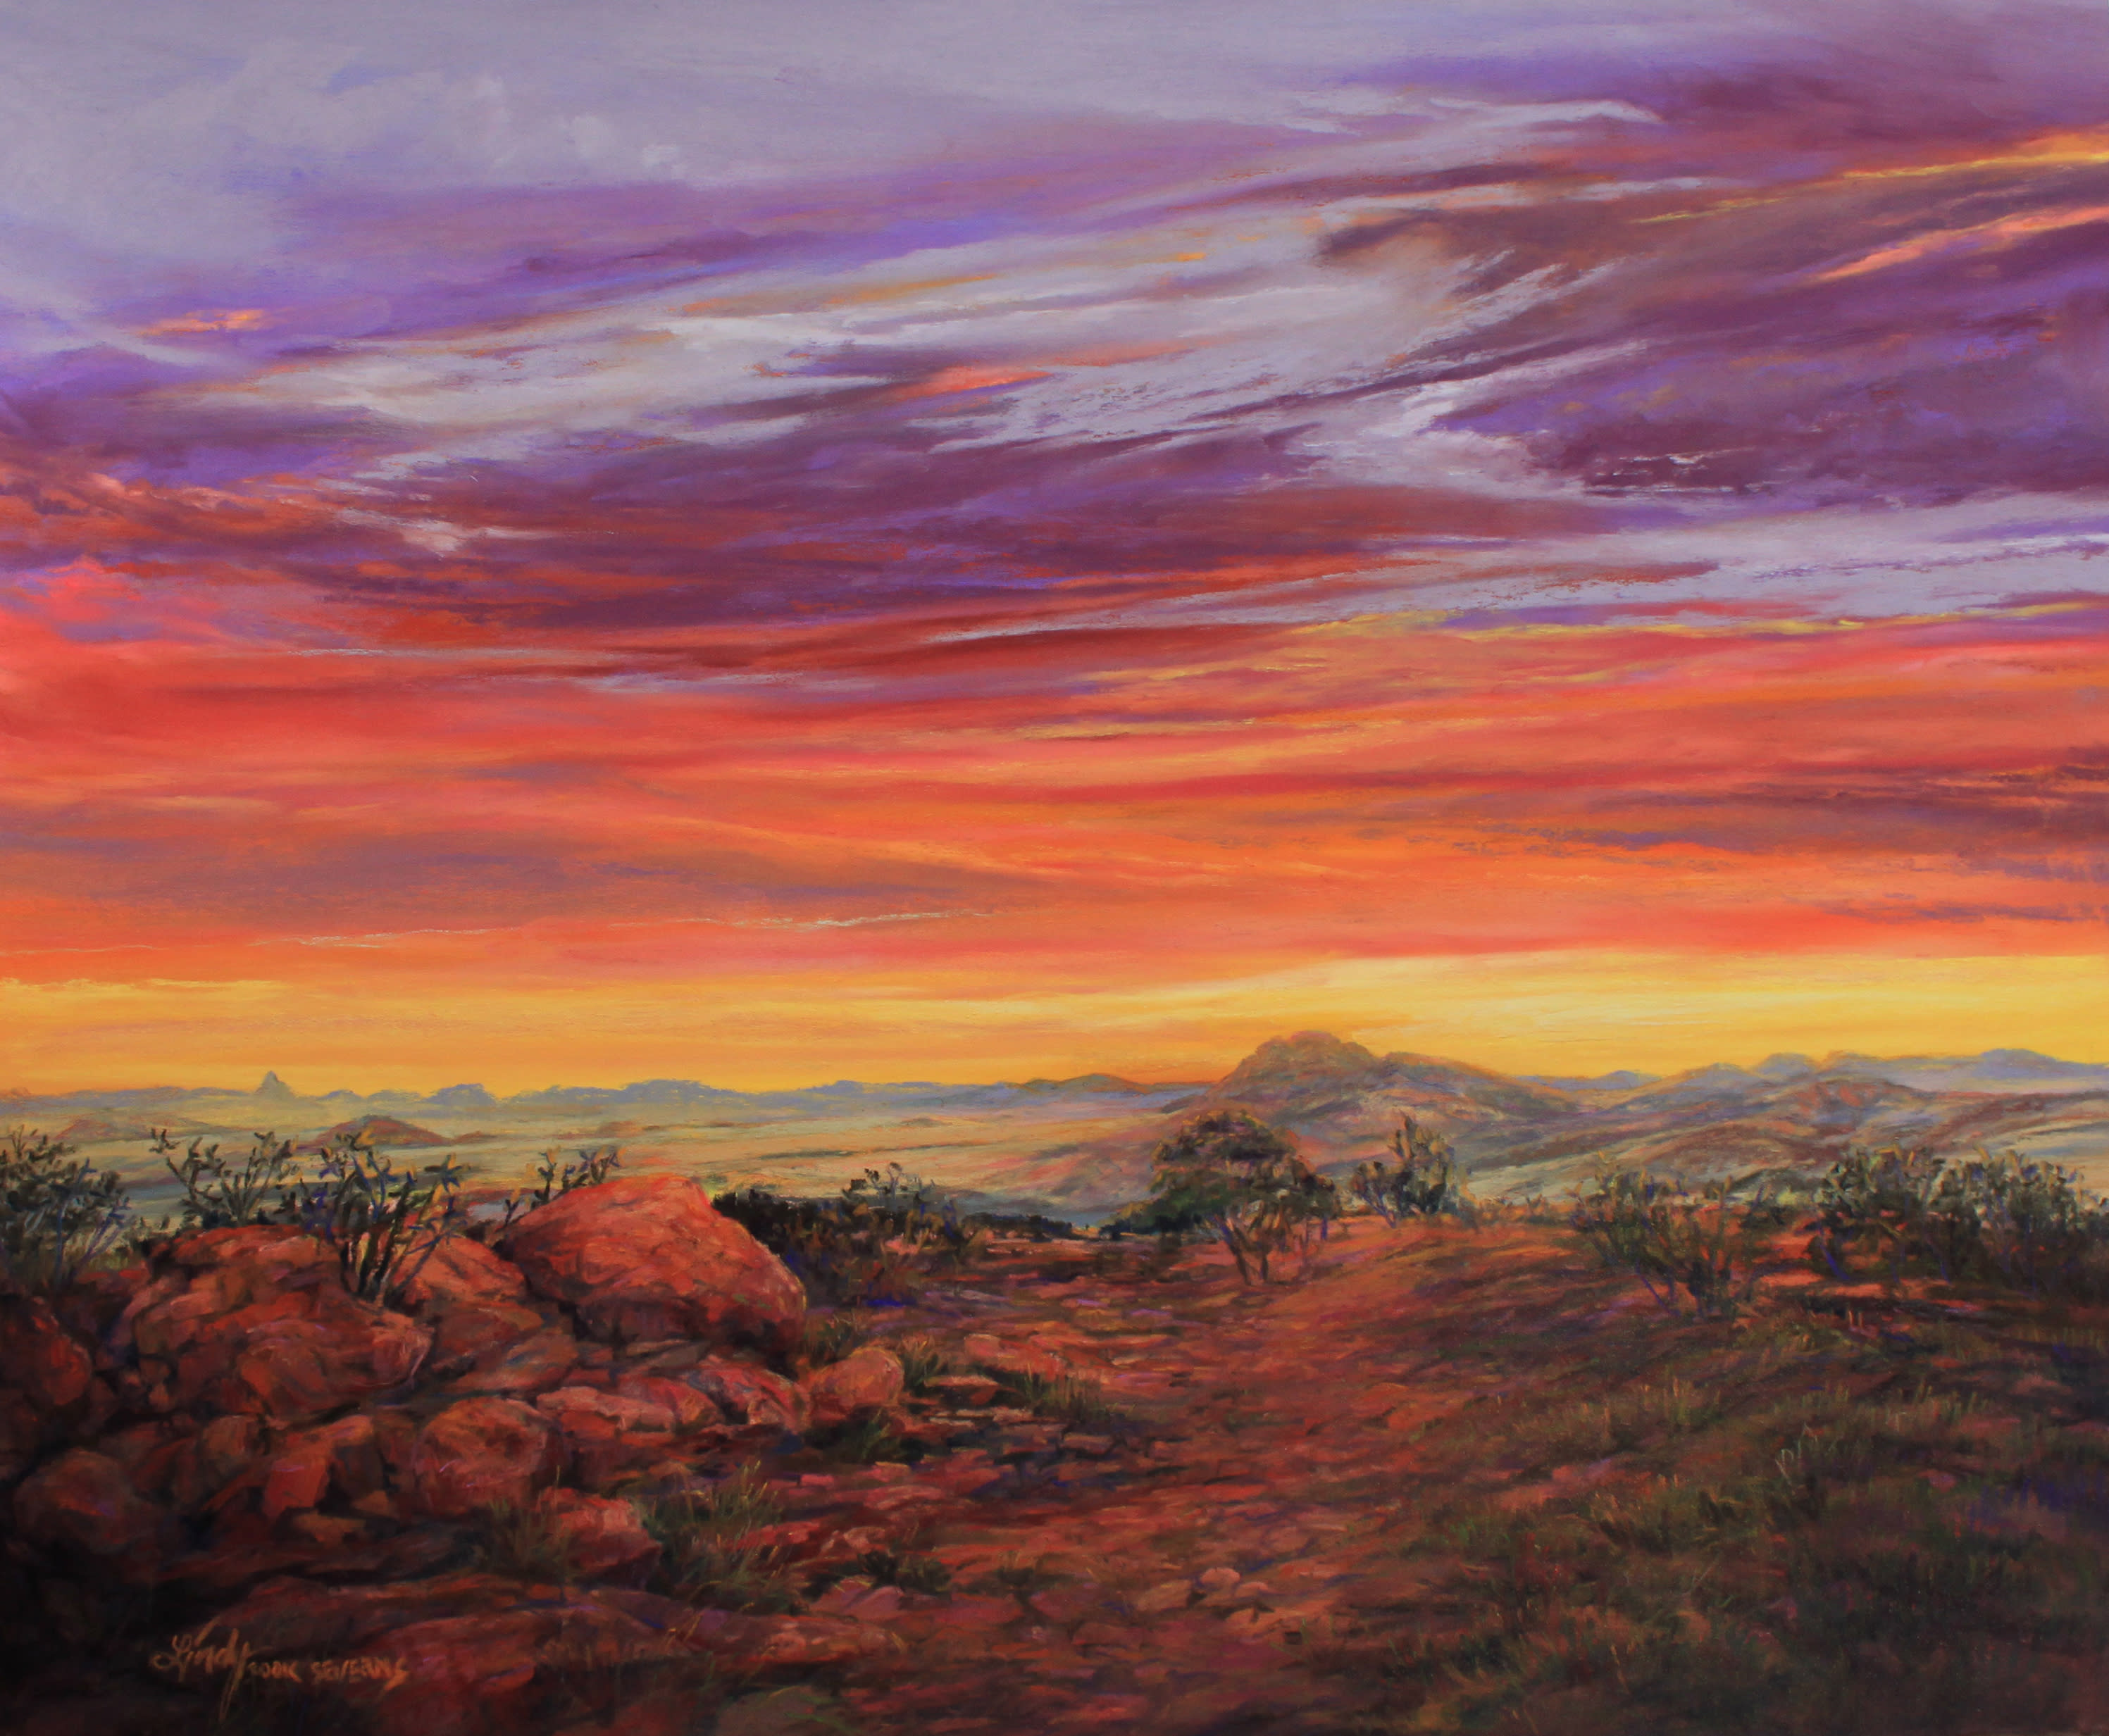 33l13 daybreak across the top of texas 14x17pastel lindycseverns edited 1 cqfbto